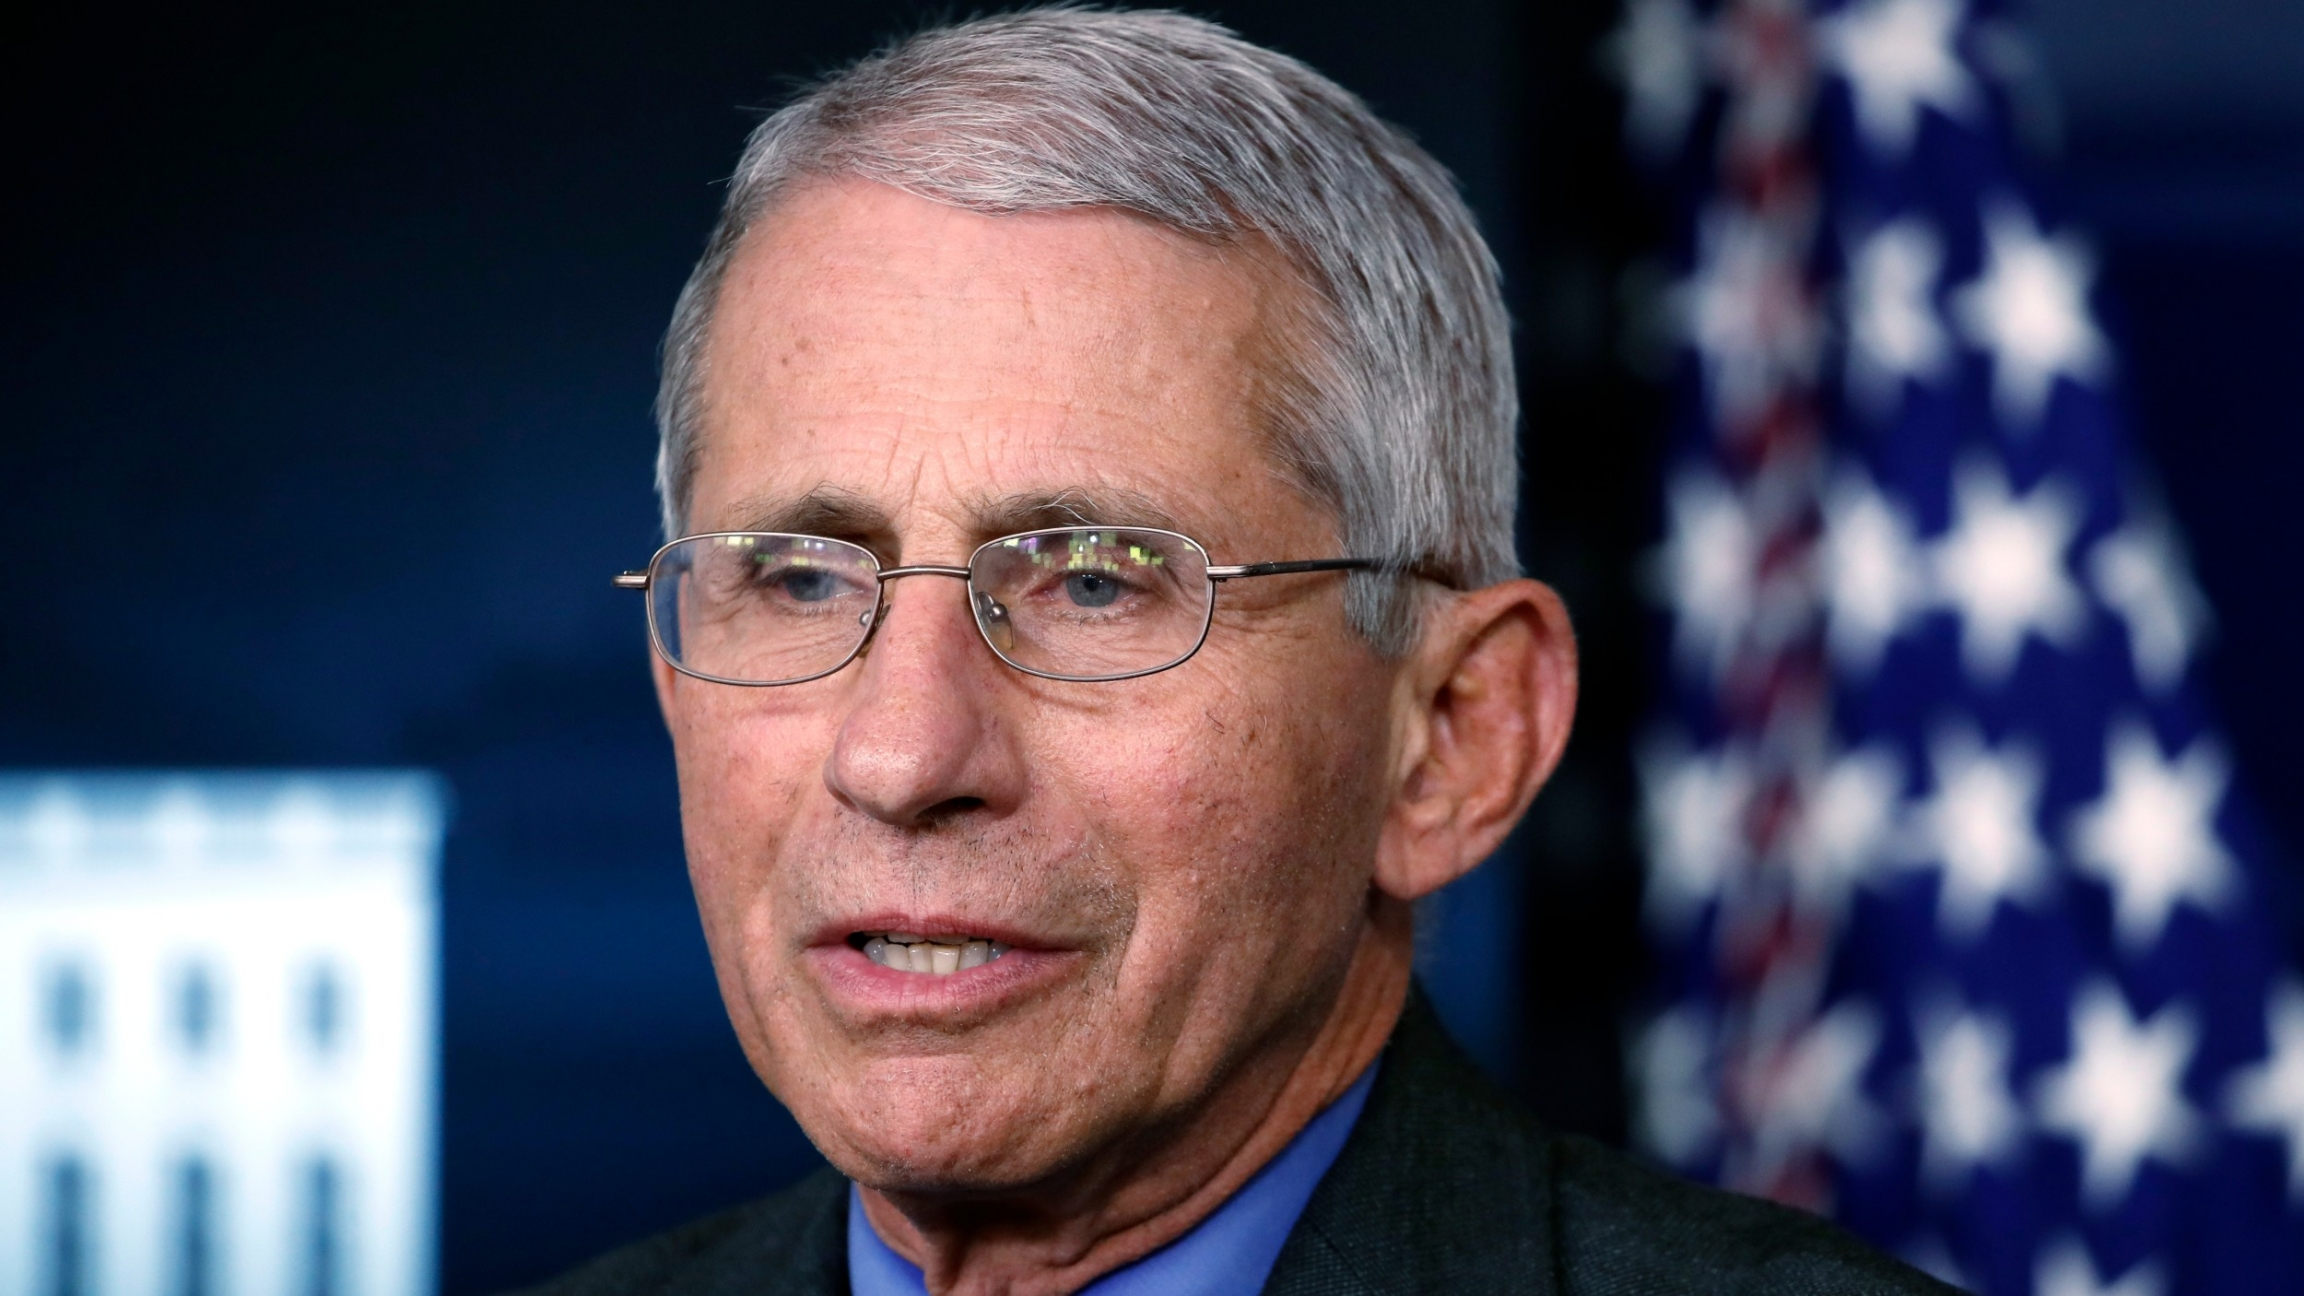 In this file photo, Dr. Anthony Fauci, director of the National Institute of Allergy and Infectious Diseases, speaks about the coronavirus in the press briefing room at the White House in Washington, April 13, 2020.